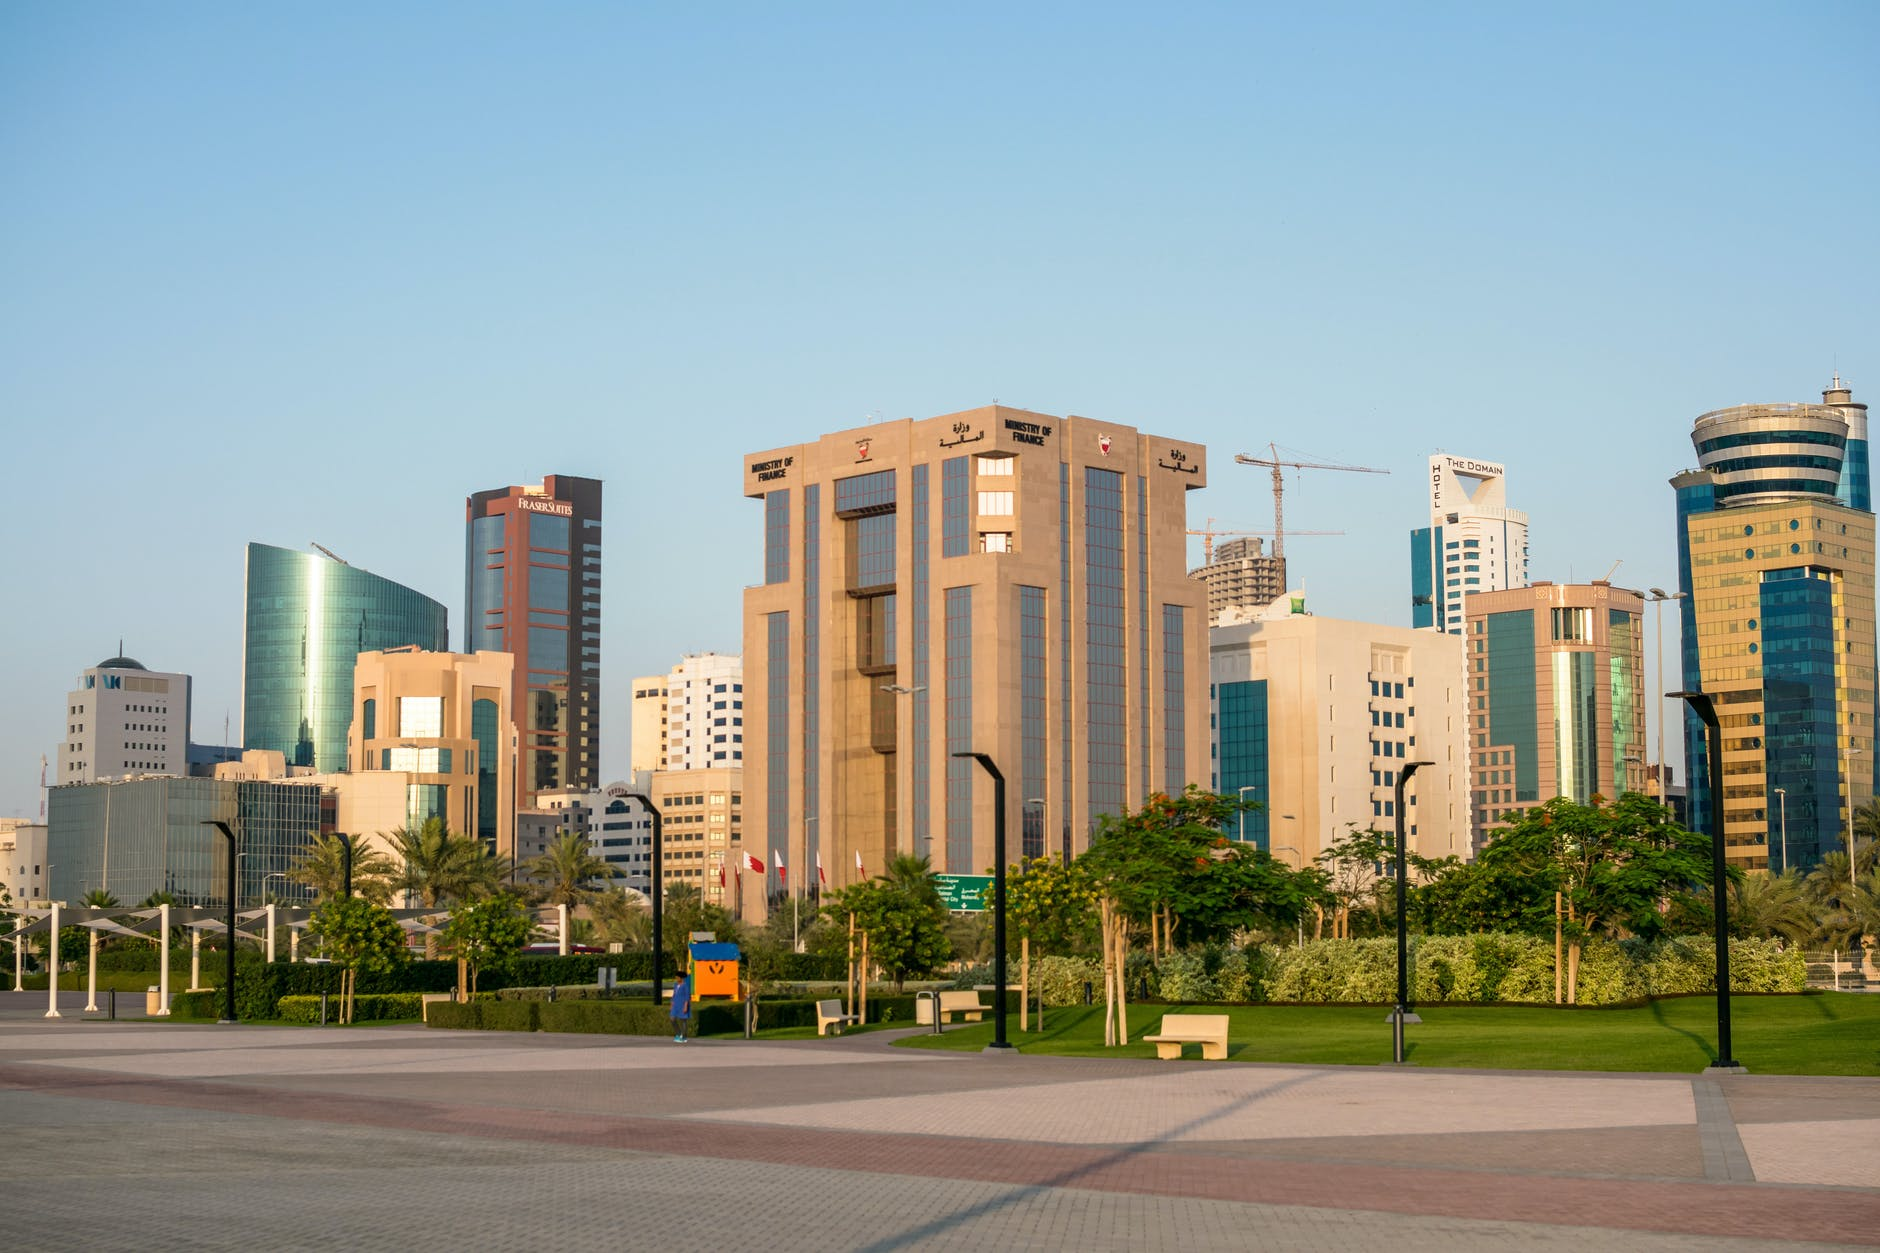 Skyline buildings and reasons why Europeans move to Bahrain